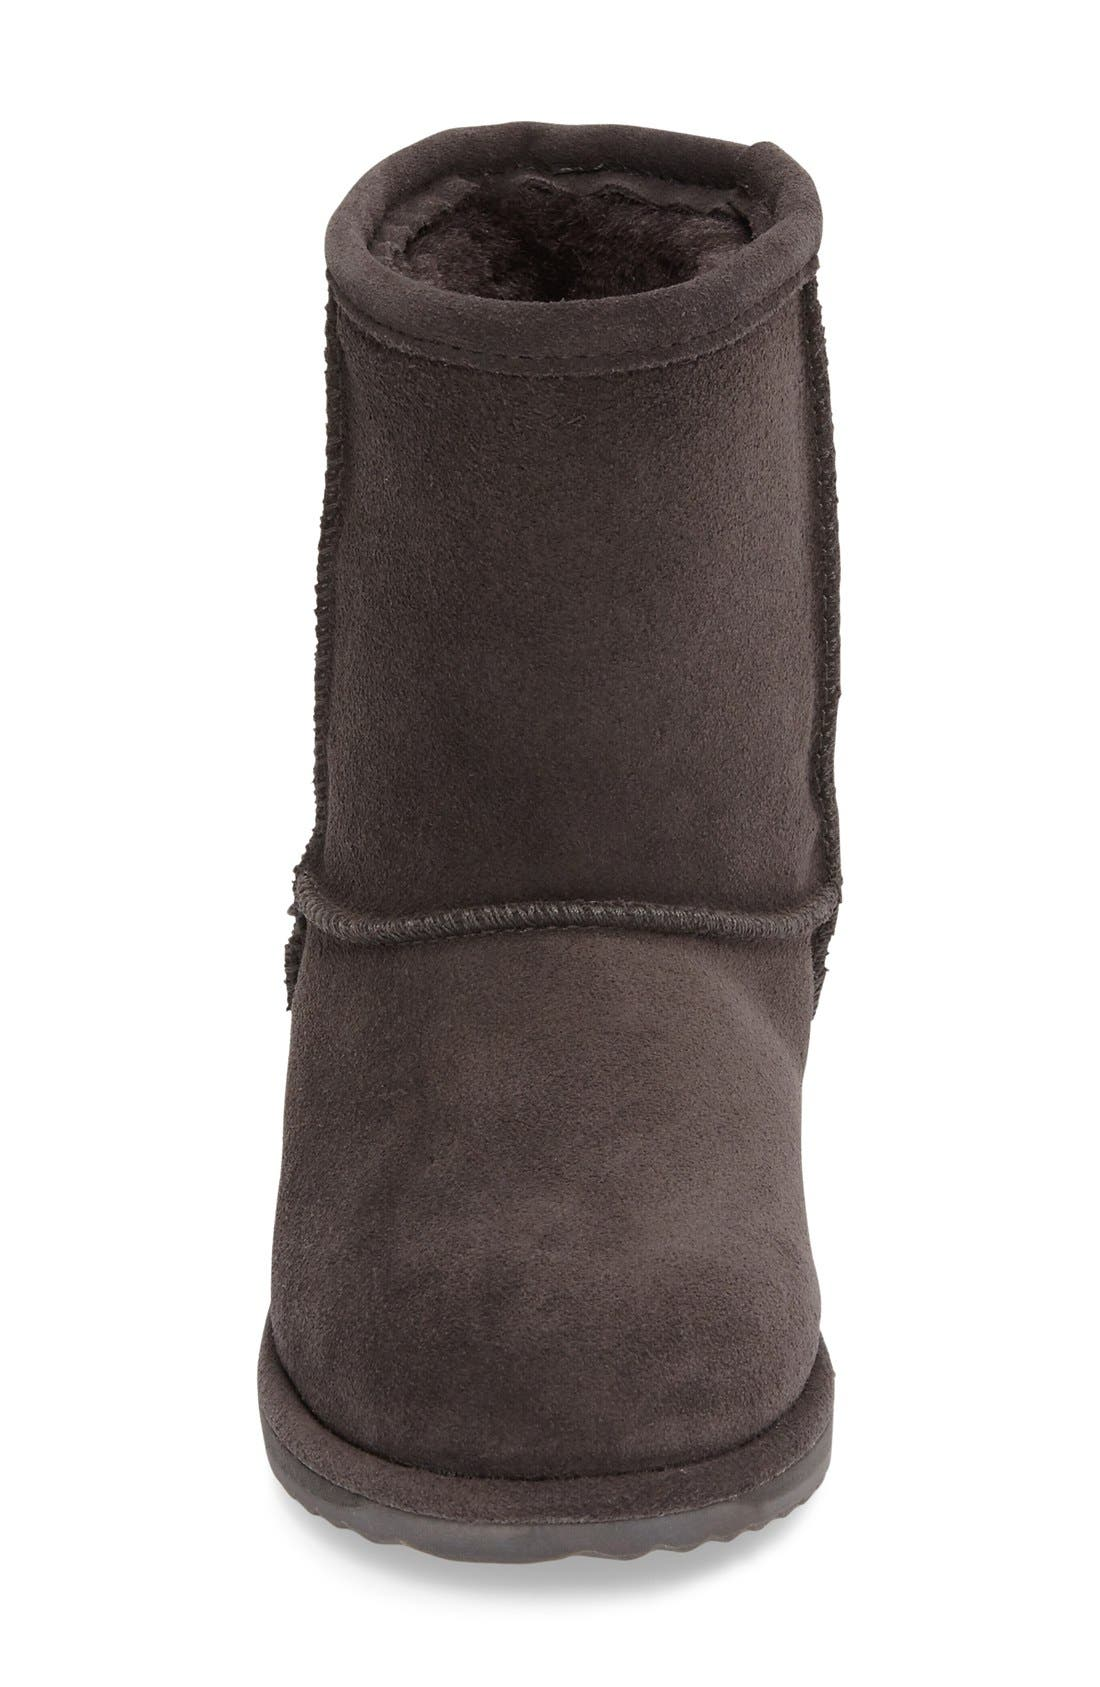 Brumby Waterproof Boot,                             Alternate thumbnail 3, color,                             Charcoal Suede